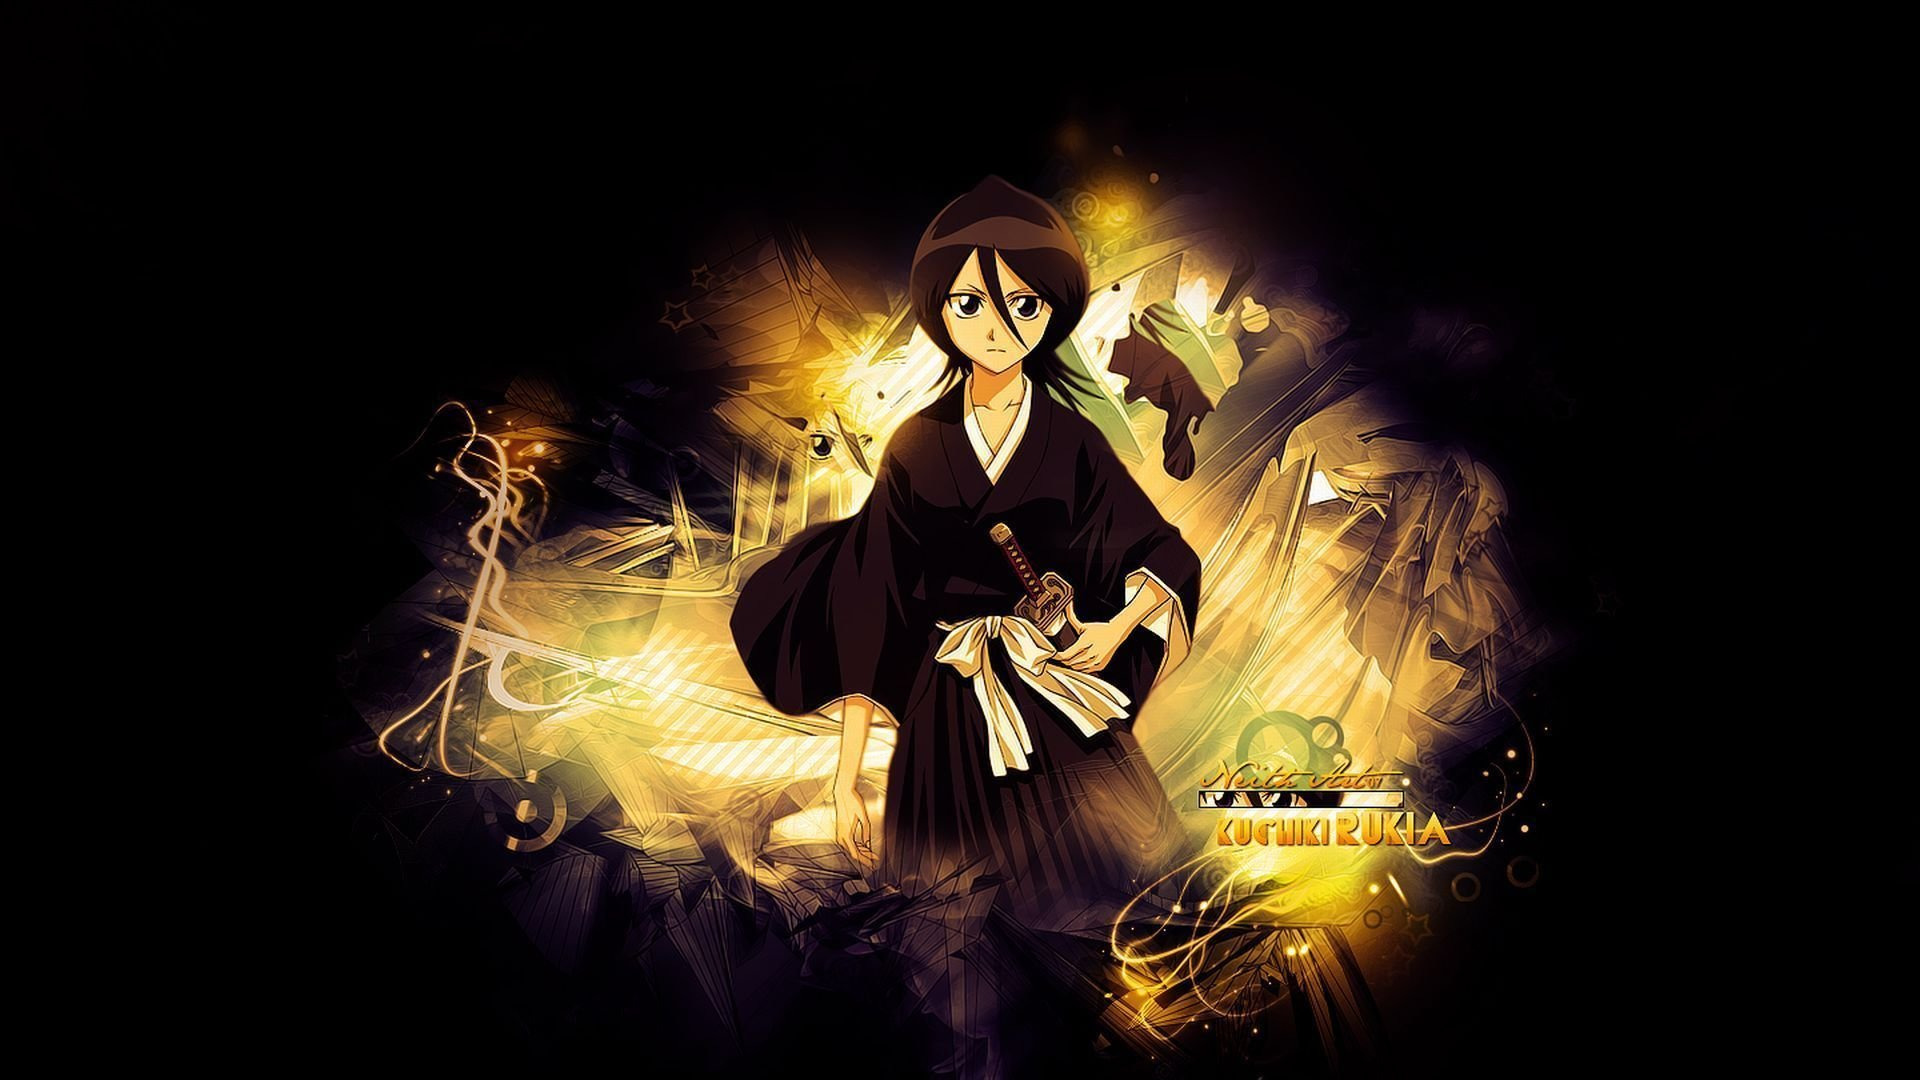 Download full hd 1920x1080 Rukia Kuchiki computer background ID:416617 for free